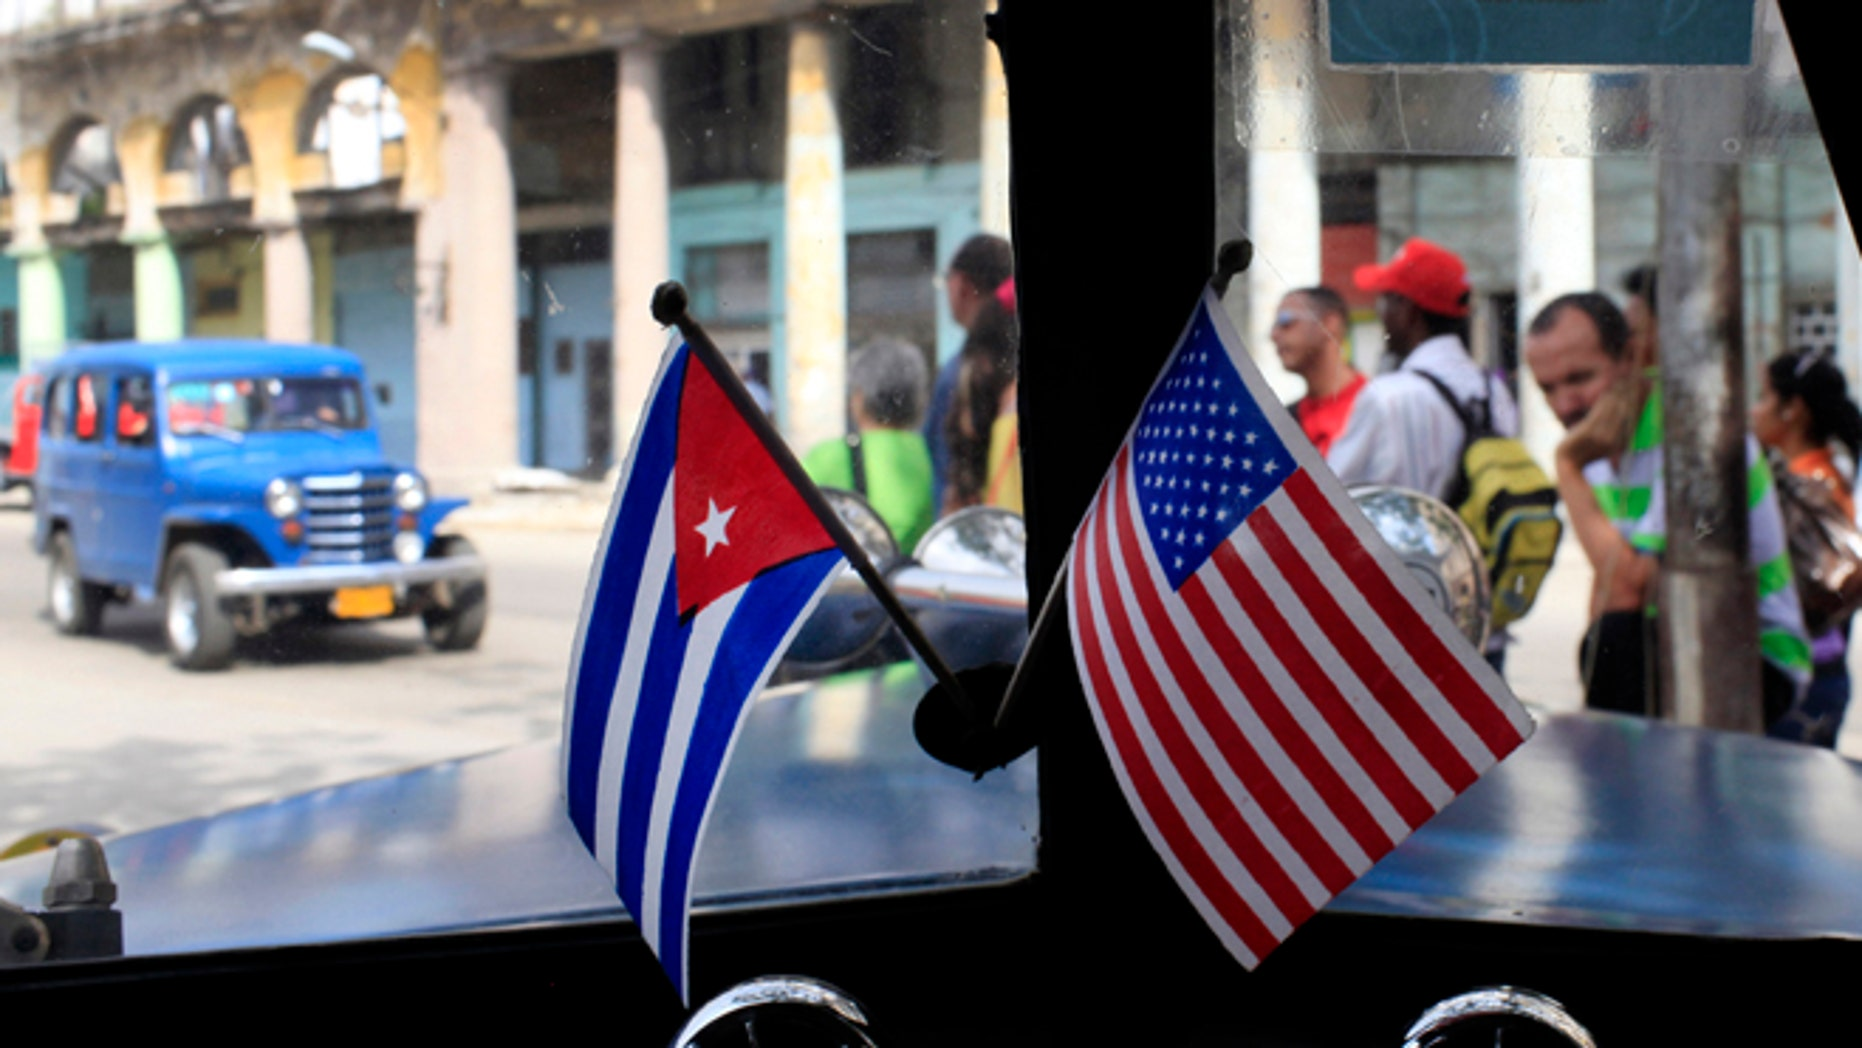 This March 22, 2013 file photo shows miniature flags representing Cuba and the U.S. displayed on the dash of an American classic car in Havana, Cuba.